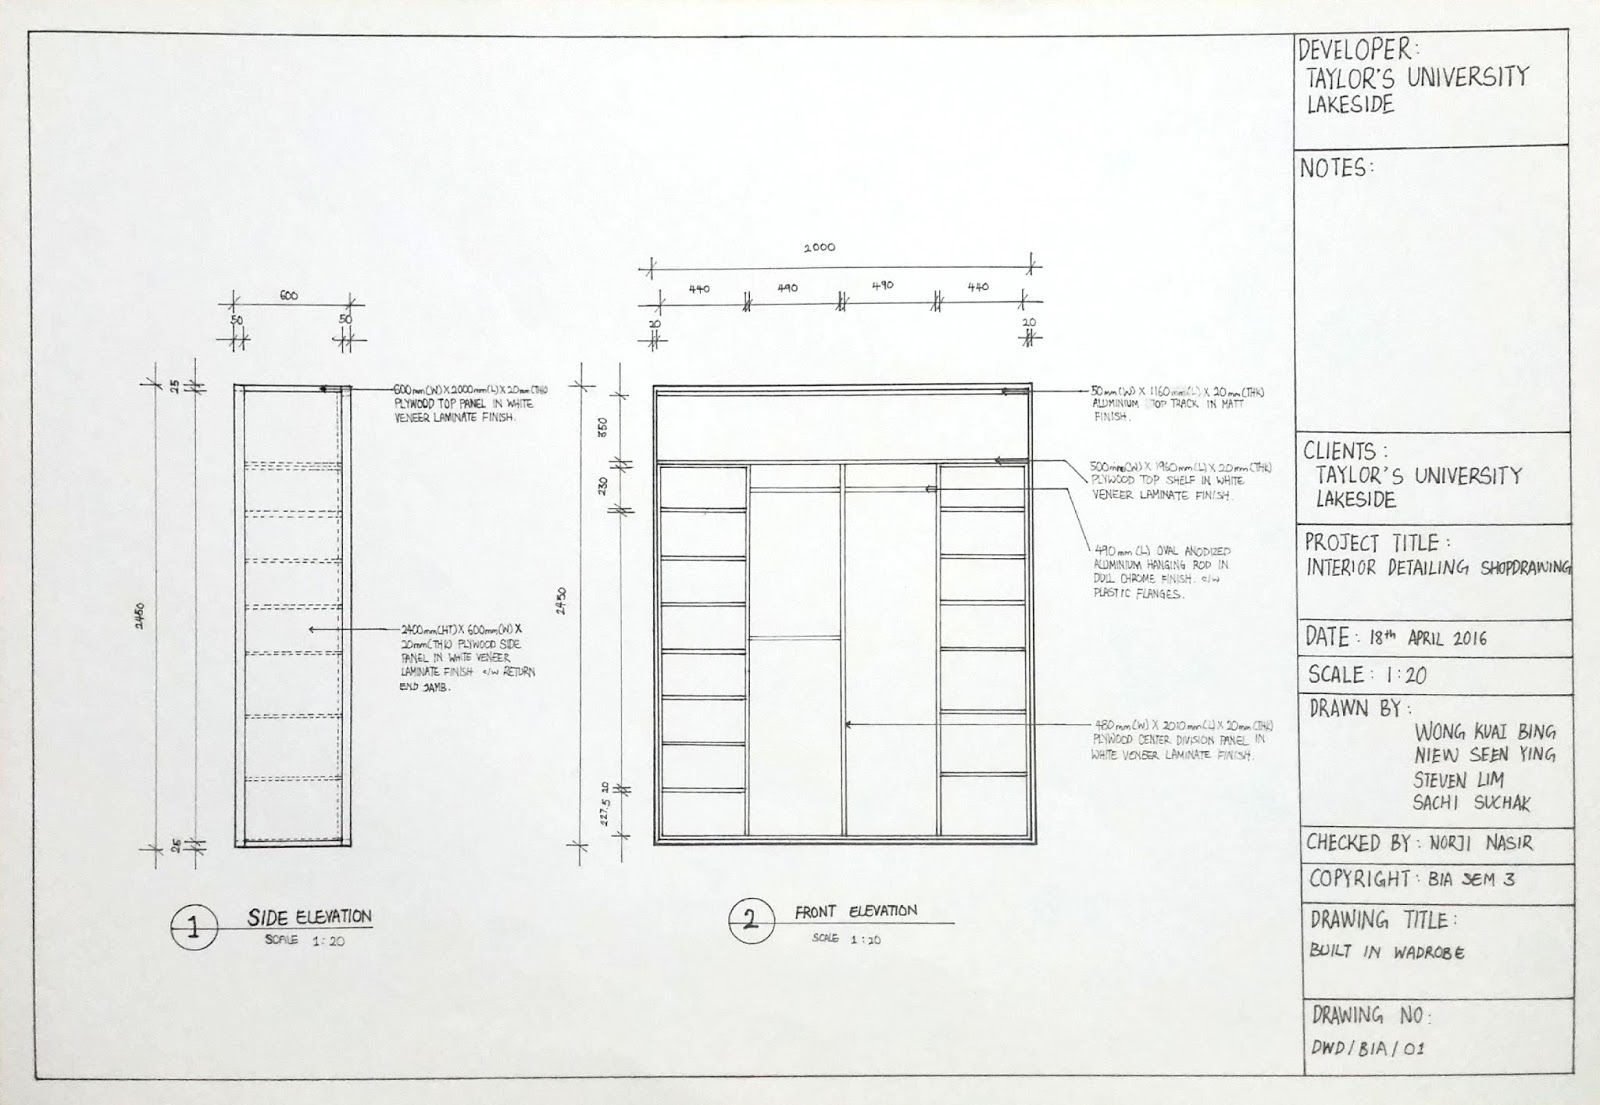 Wardrobe Plan Elevation Section : Footsteps of a future designer detailing and working